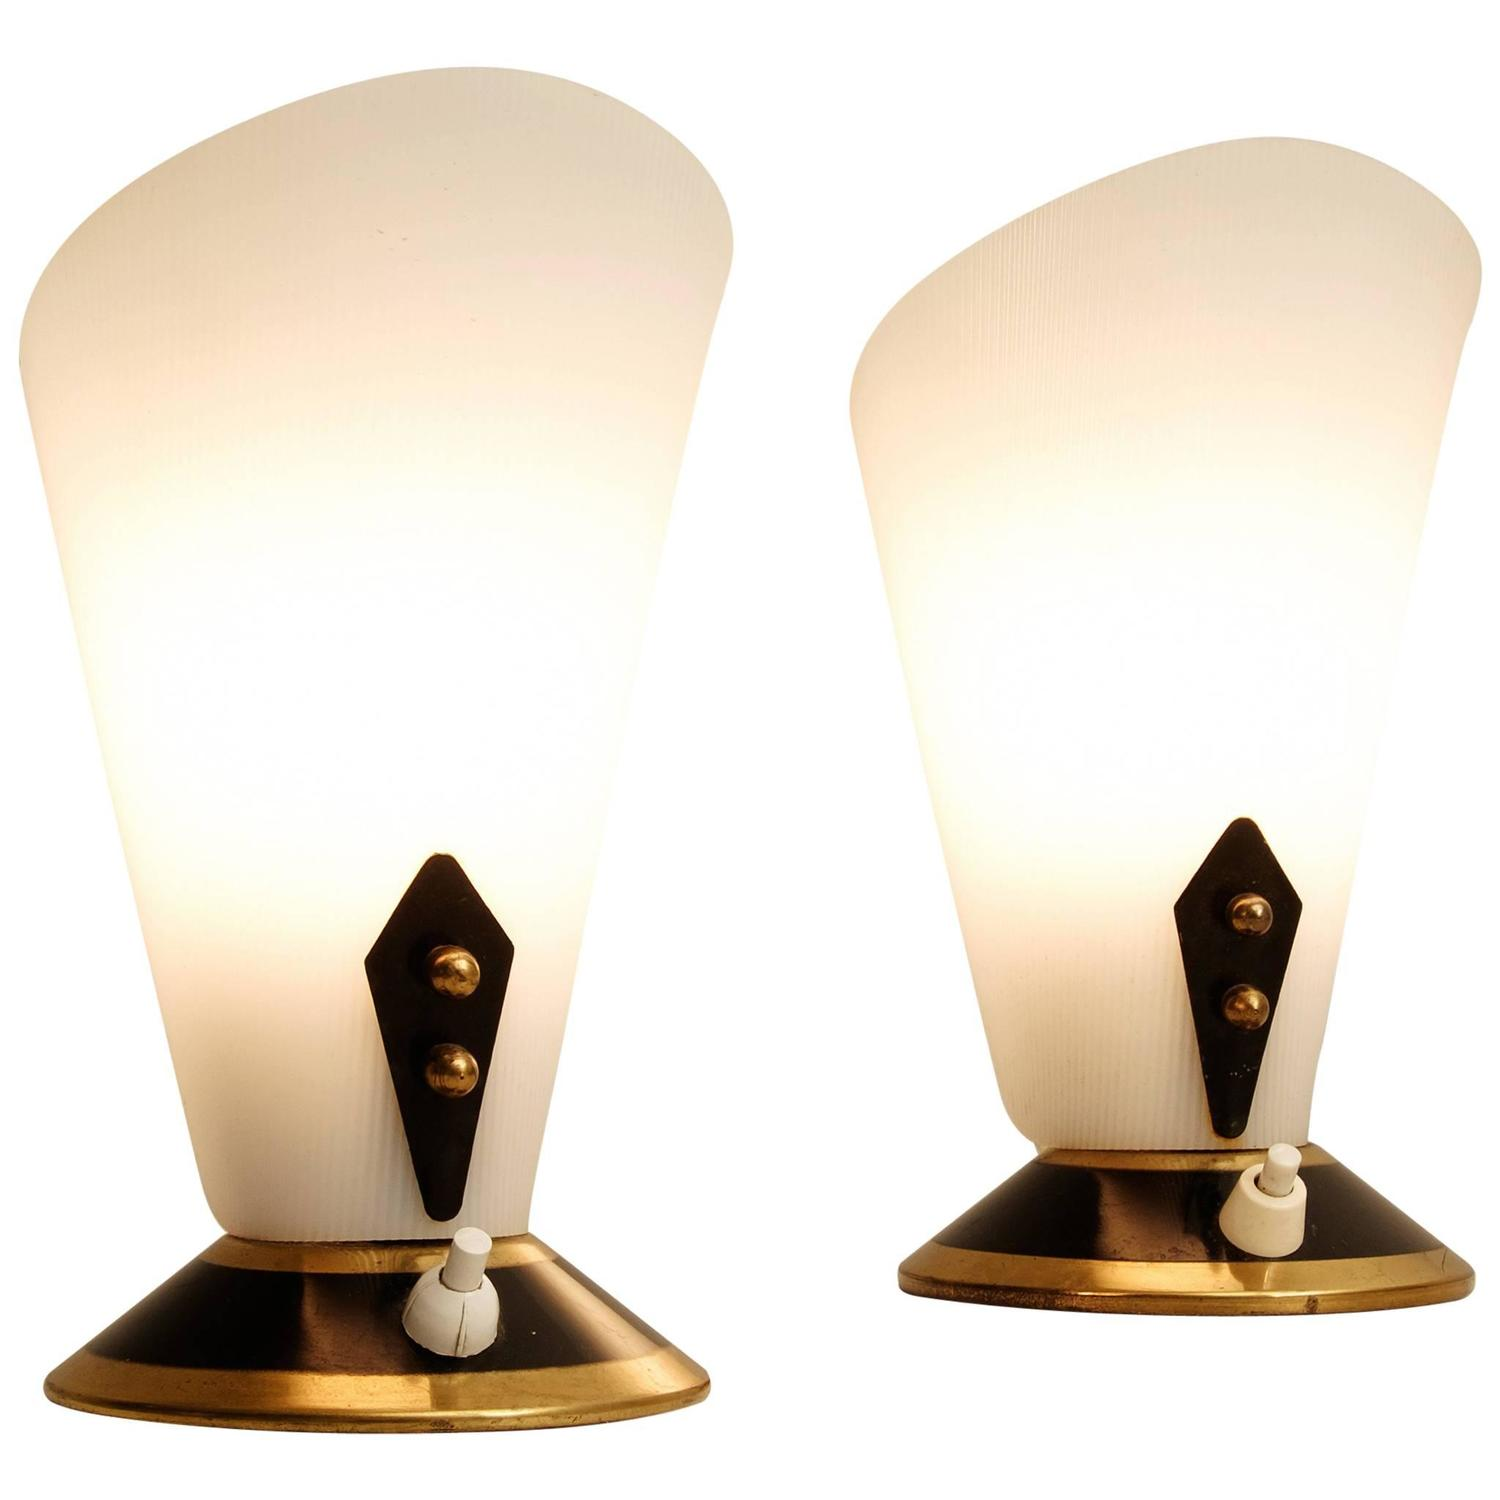 pair of small table lamps in black gold and white for sale at 1stdibs. Black Bedroom Furniture Sets. Home Design Ideas